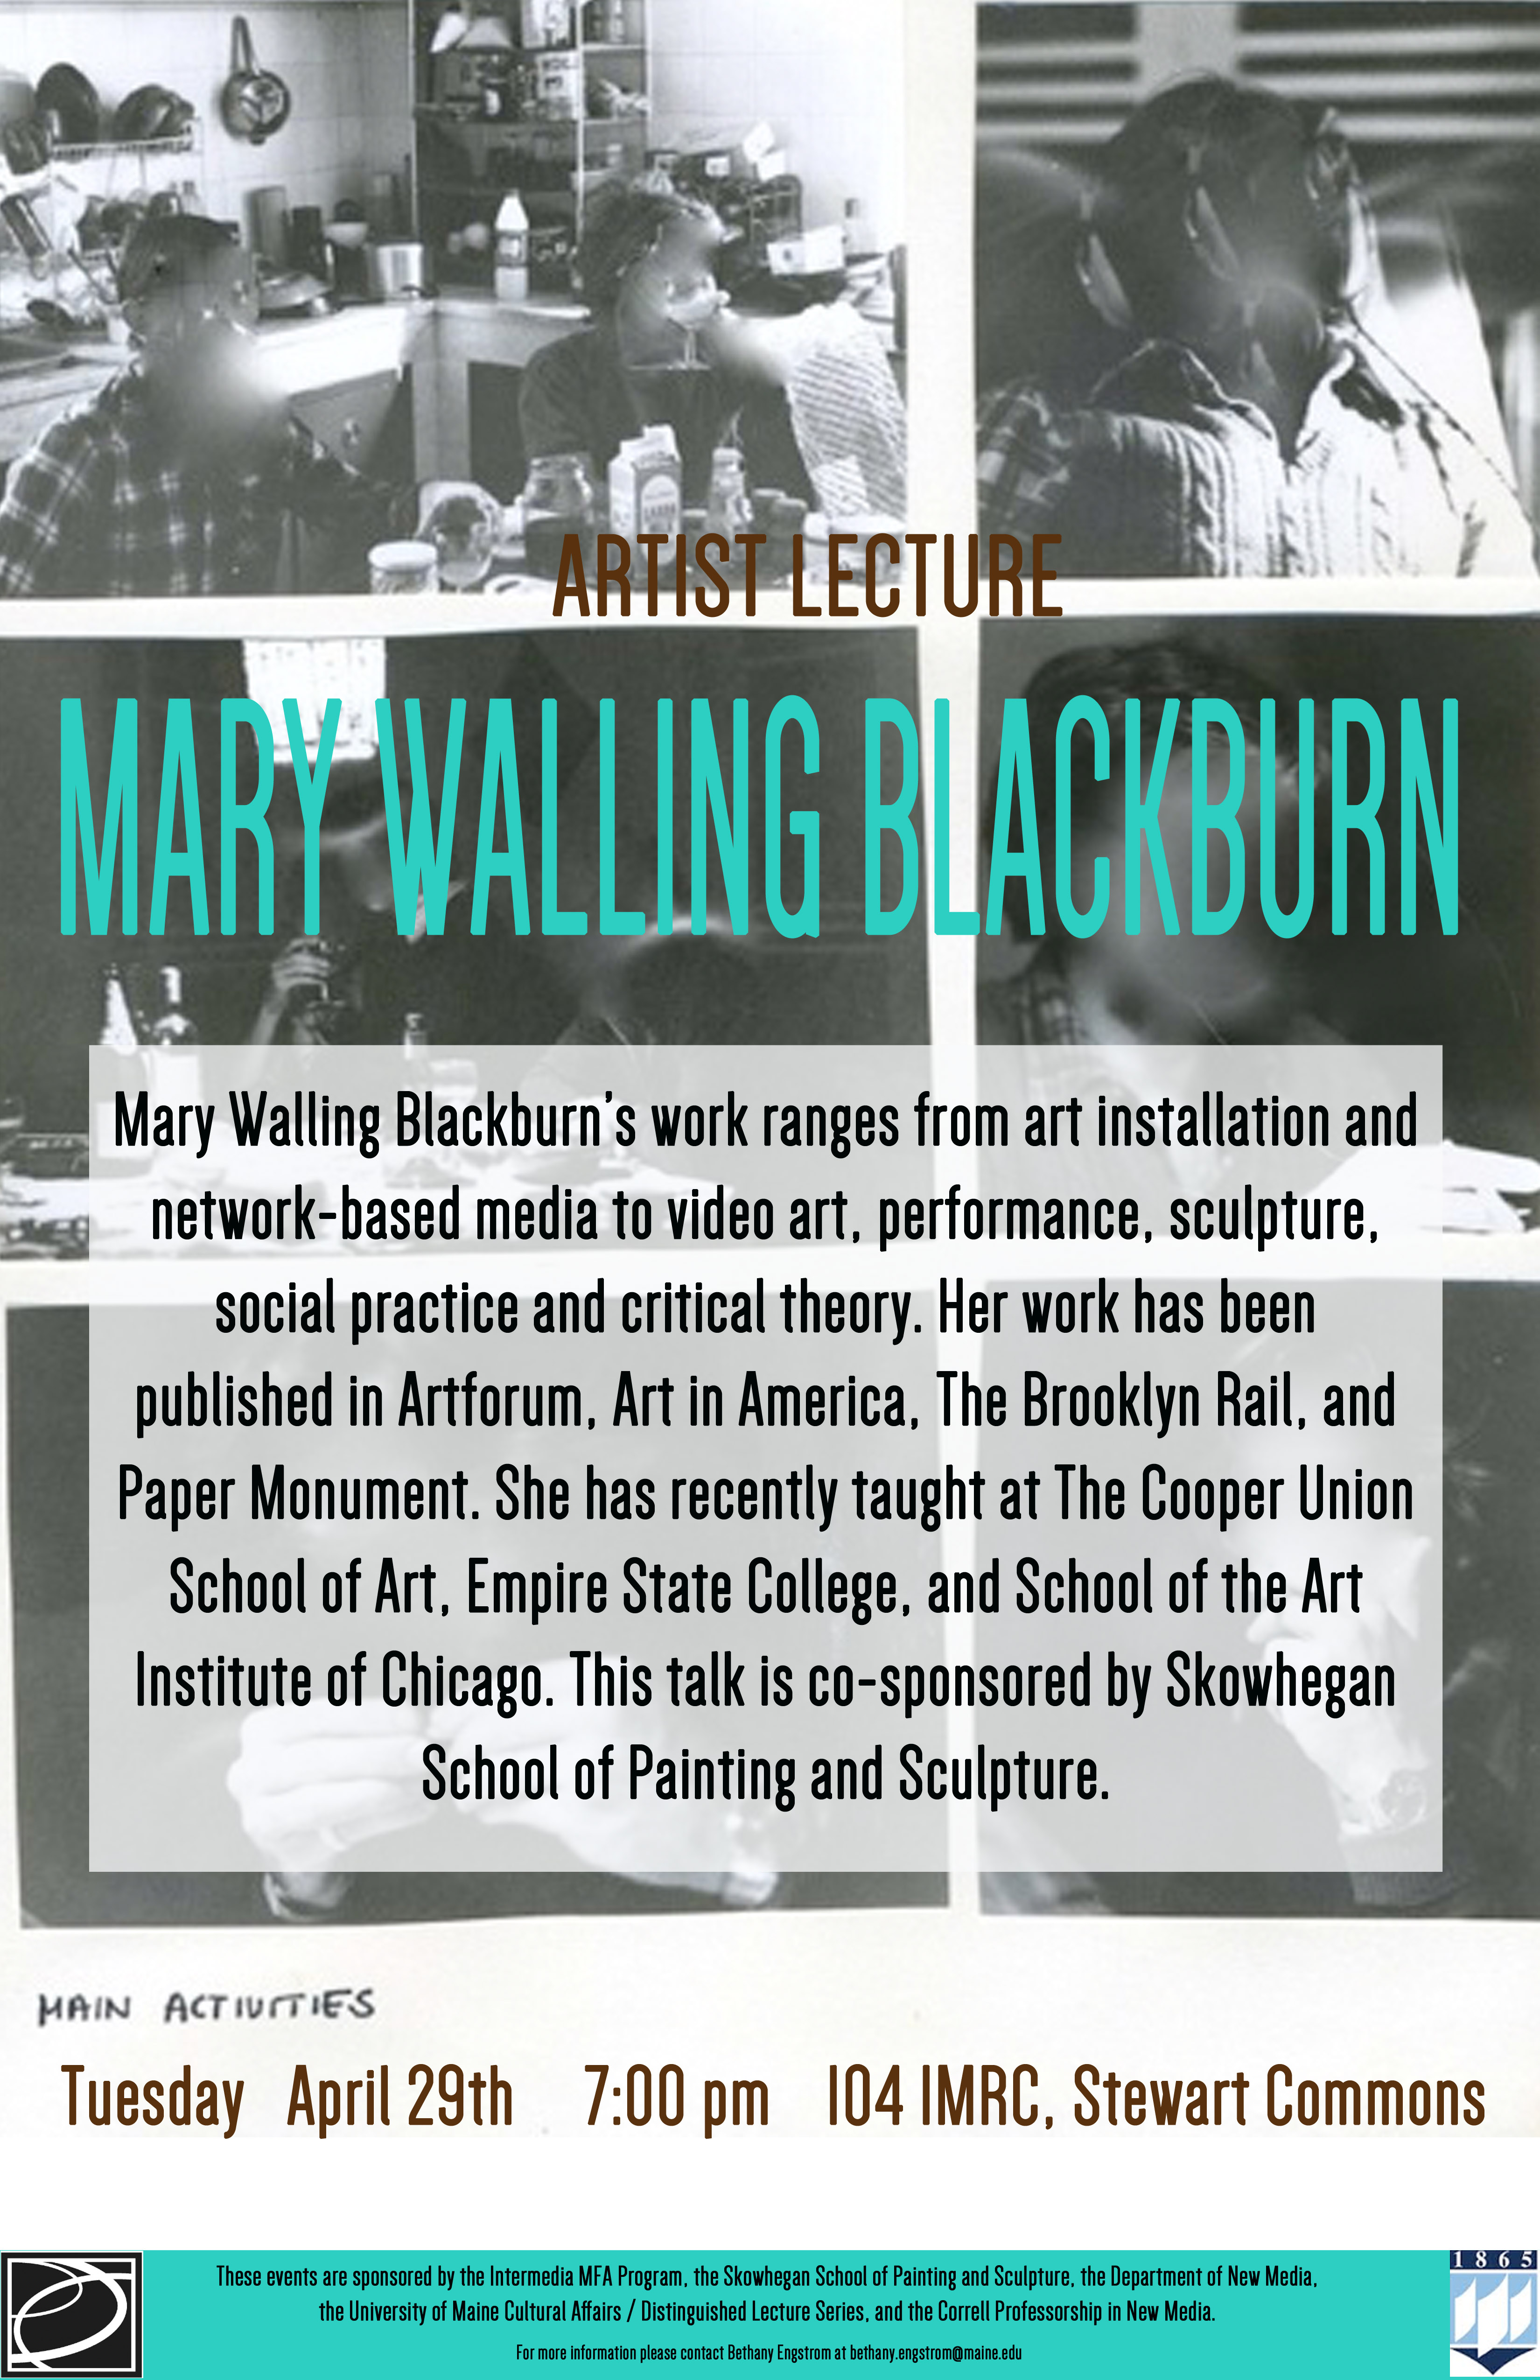 MaryWaillingBlackburnPoster